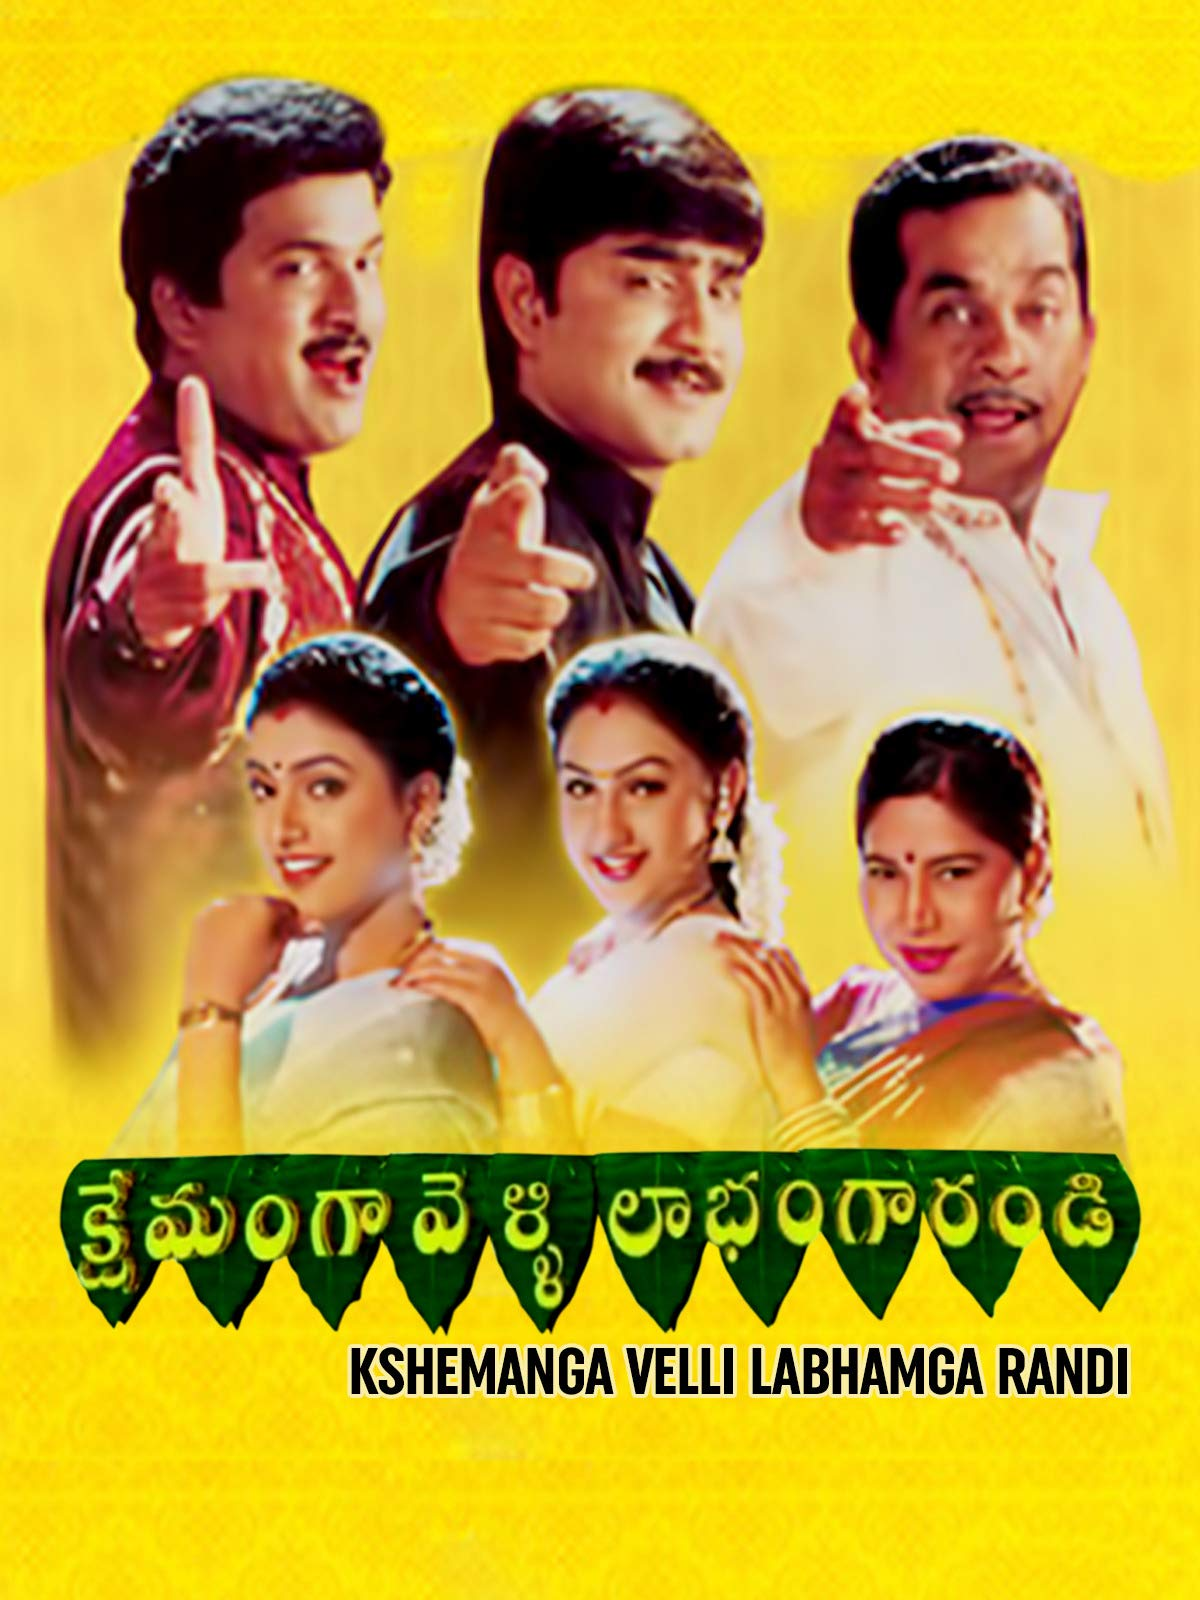 Amazon com: Watch Kshemanga Velli Labhanga Randi | Prime Video